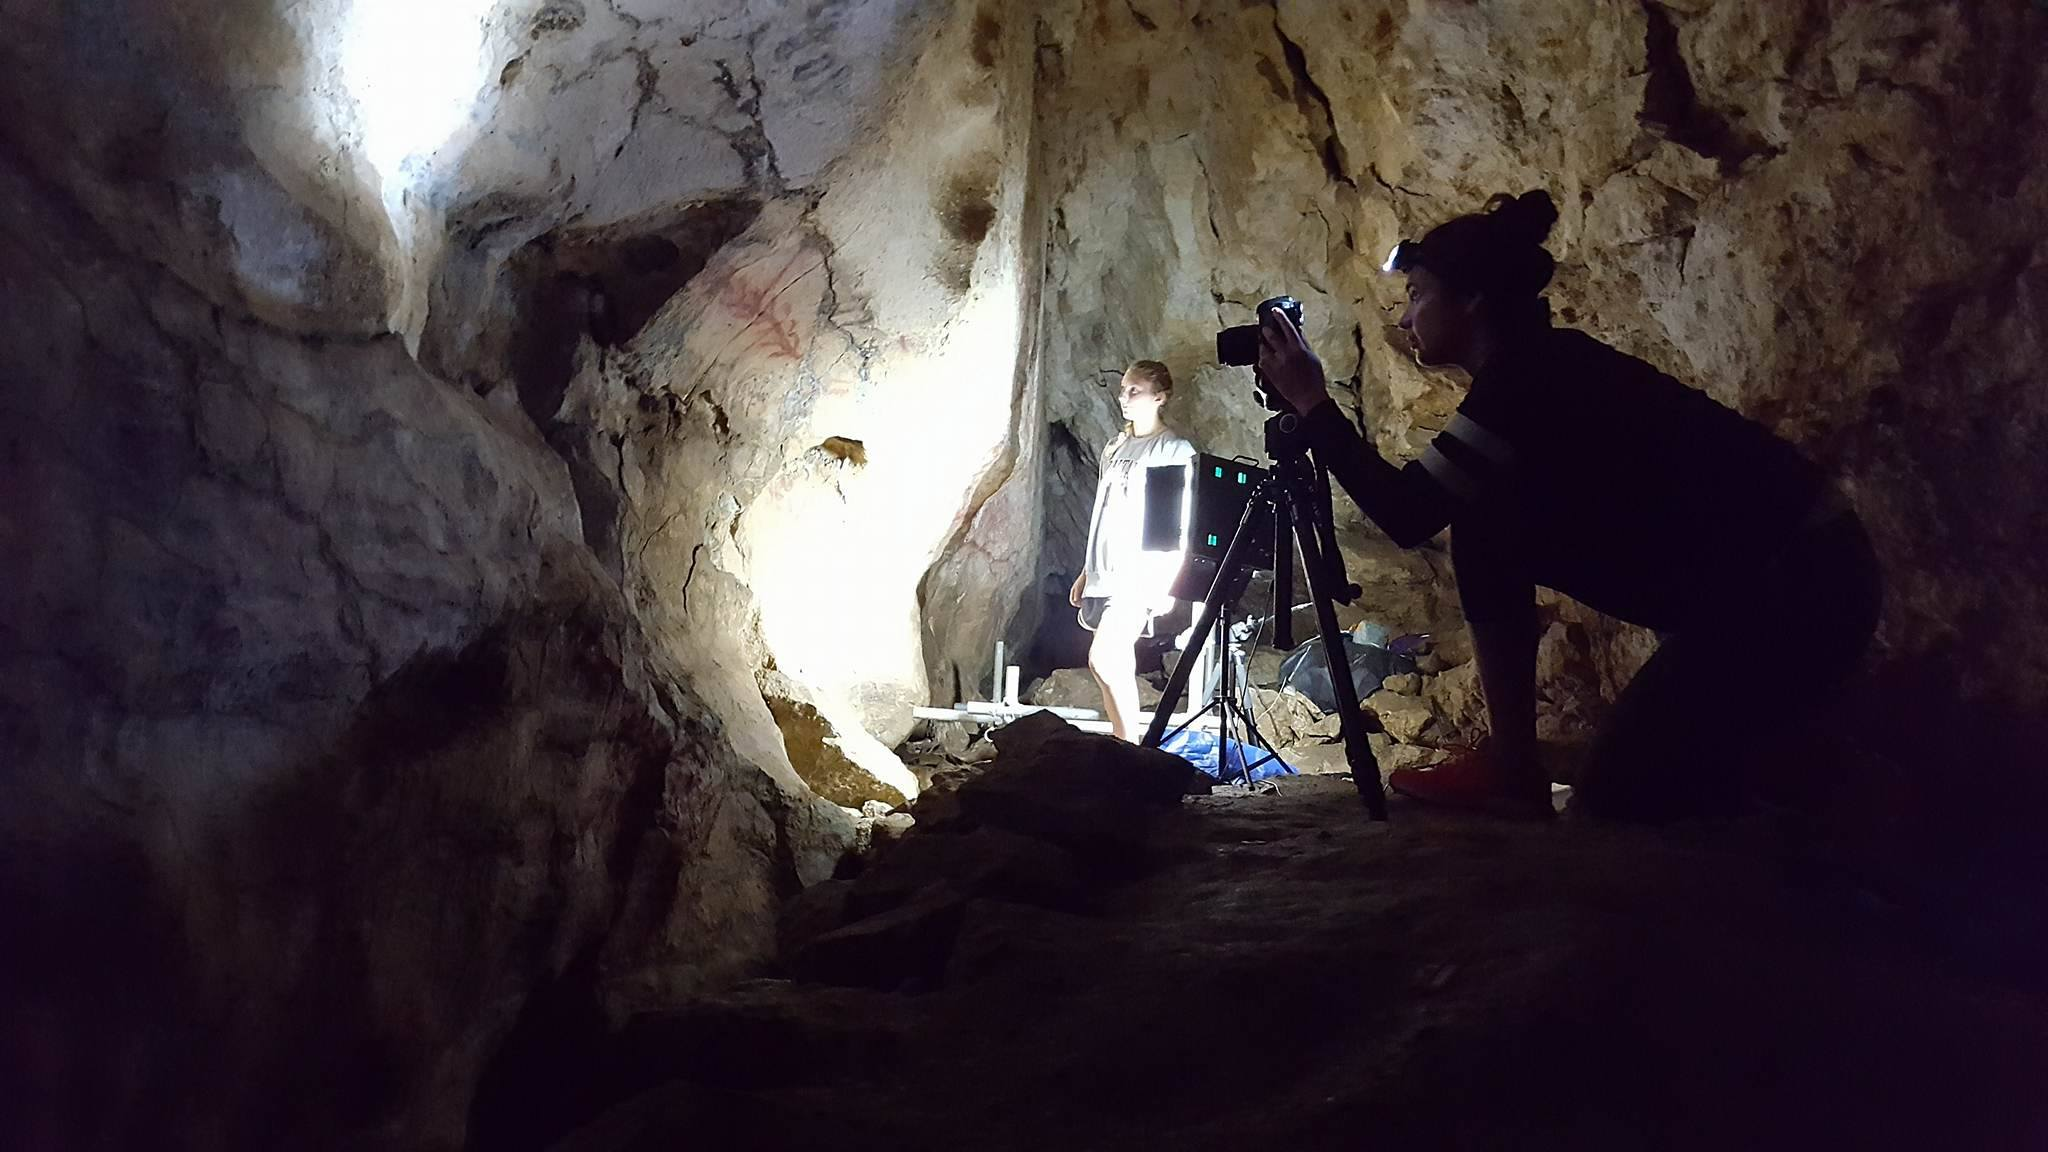 Suzanna Hamer and Benjamin Altshuler get to work in the cave